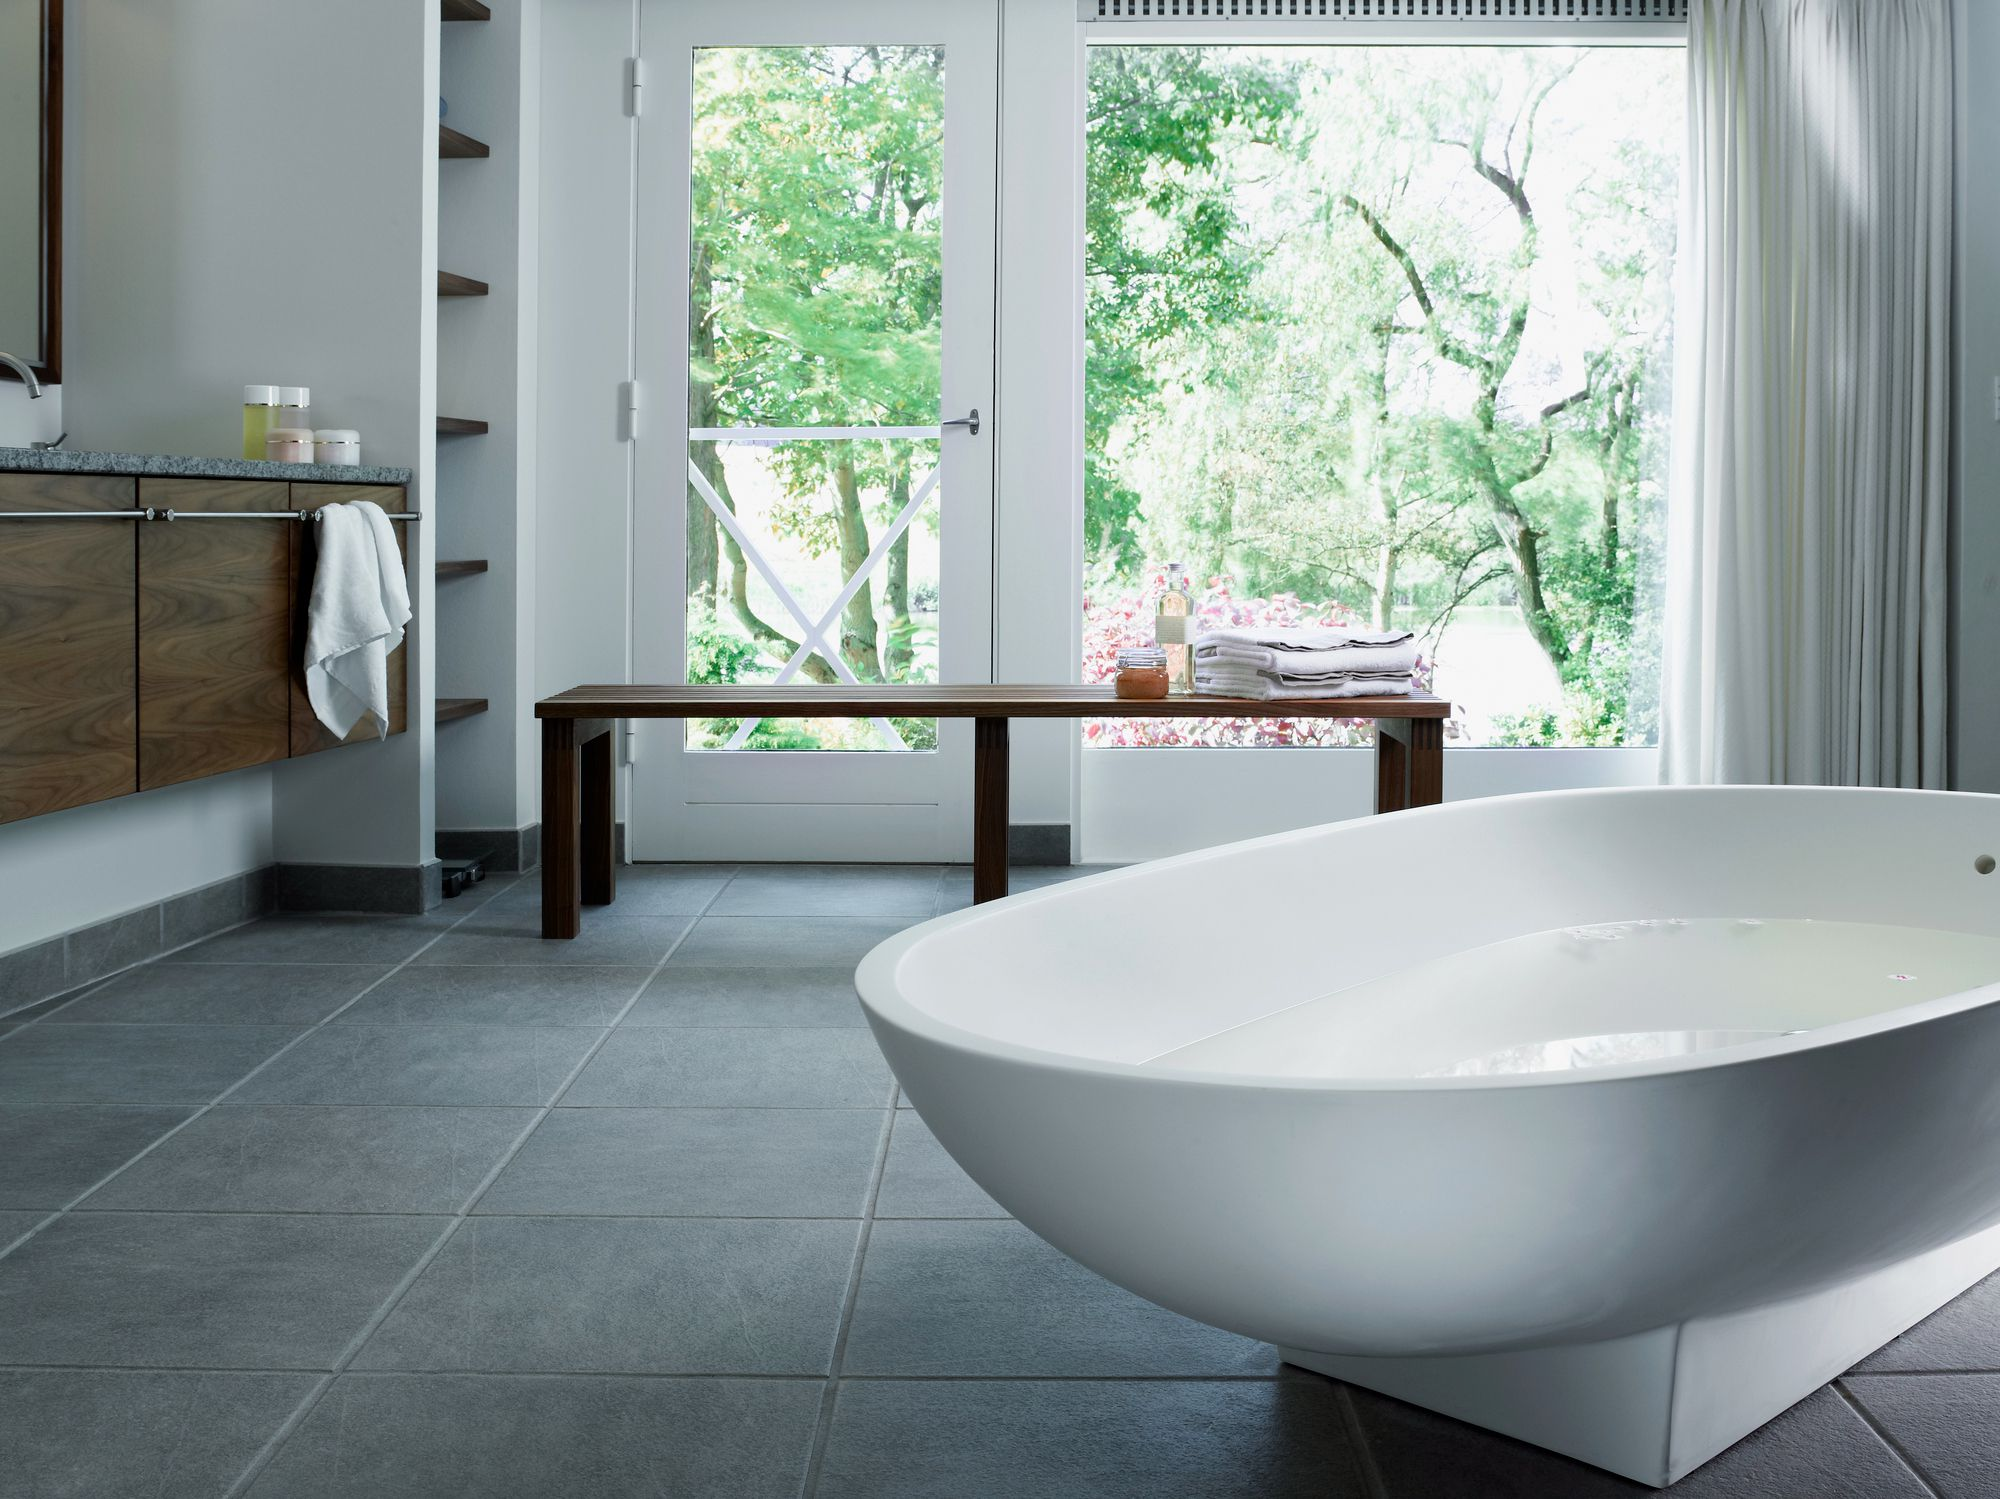 Bathroom Vinyl Tile Vs Ceramic Tile - Bathroom ceramic tile floor